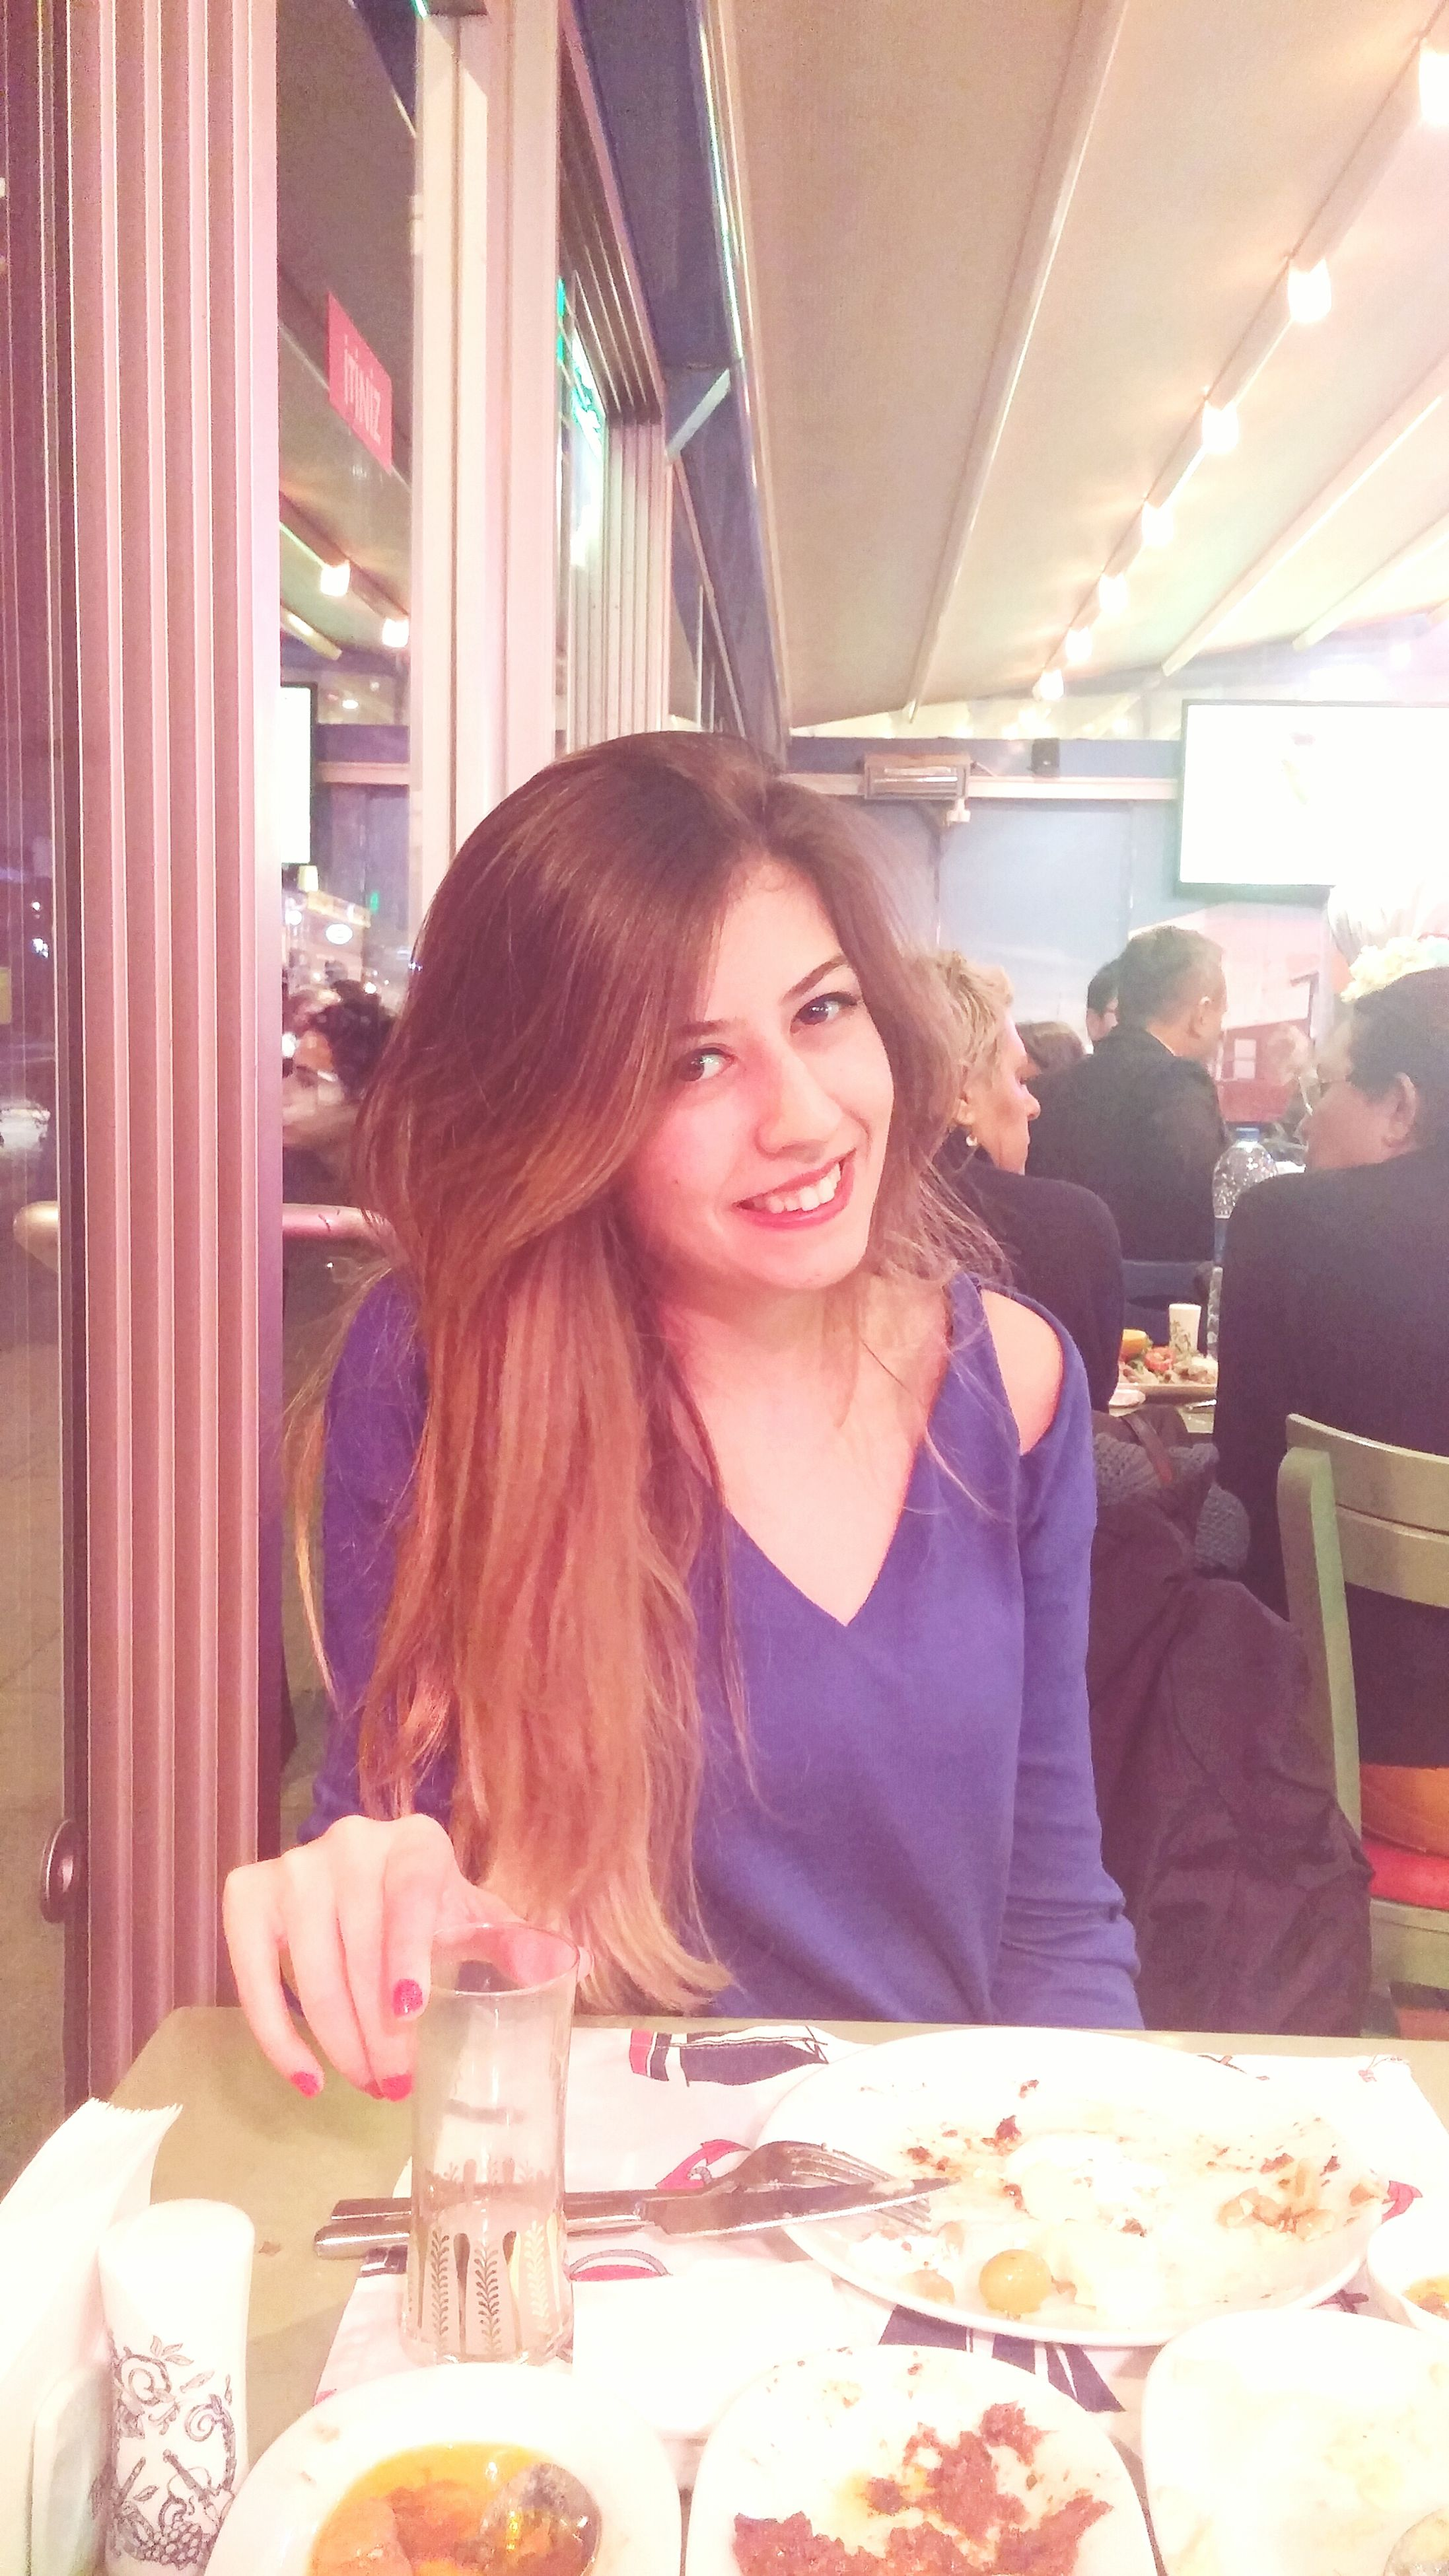 indoors, young adult, lifestyles, person, young women, leisure activity, sitting, casual clothing, waist up, portrait, looking at camera, headshot, front view, smiling, food and drink, wireless technology, long hair, restaurant